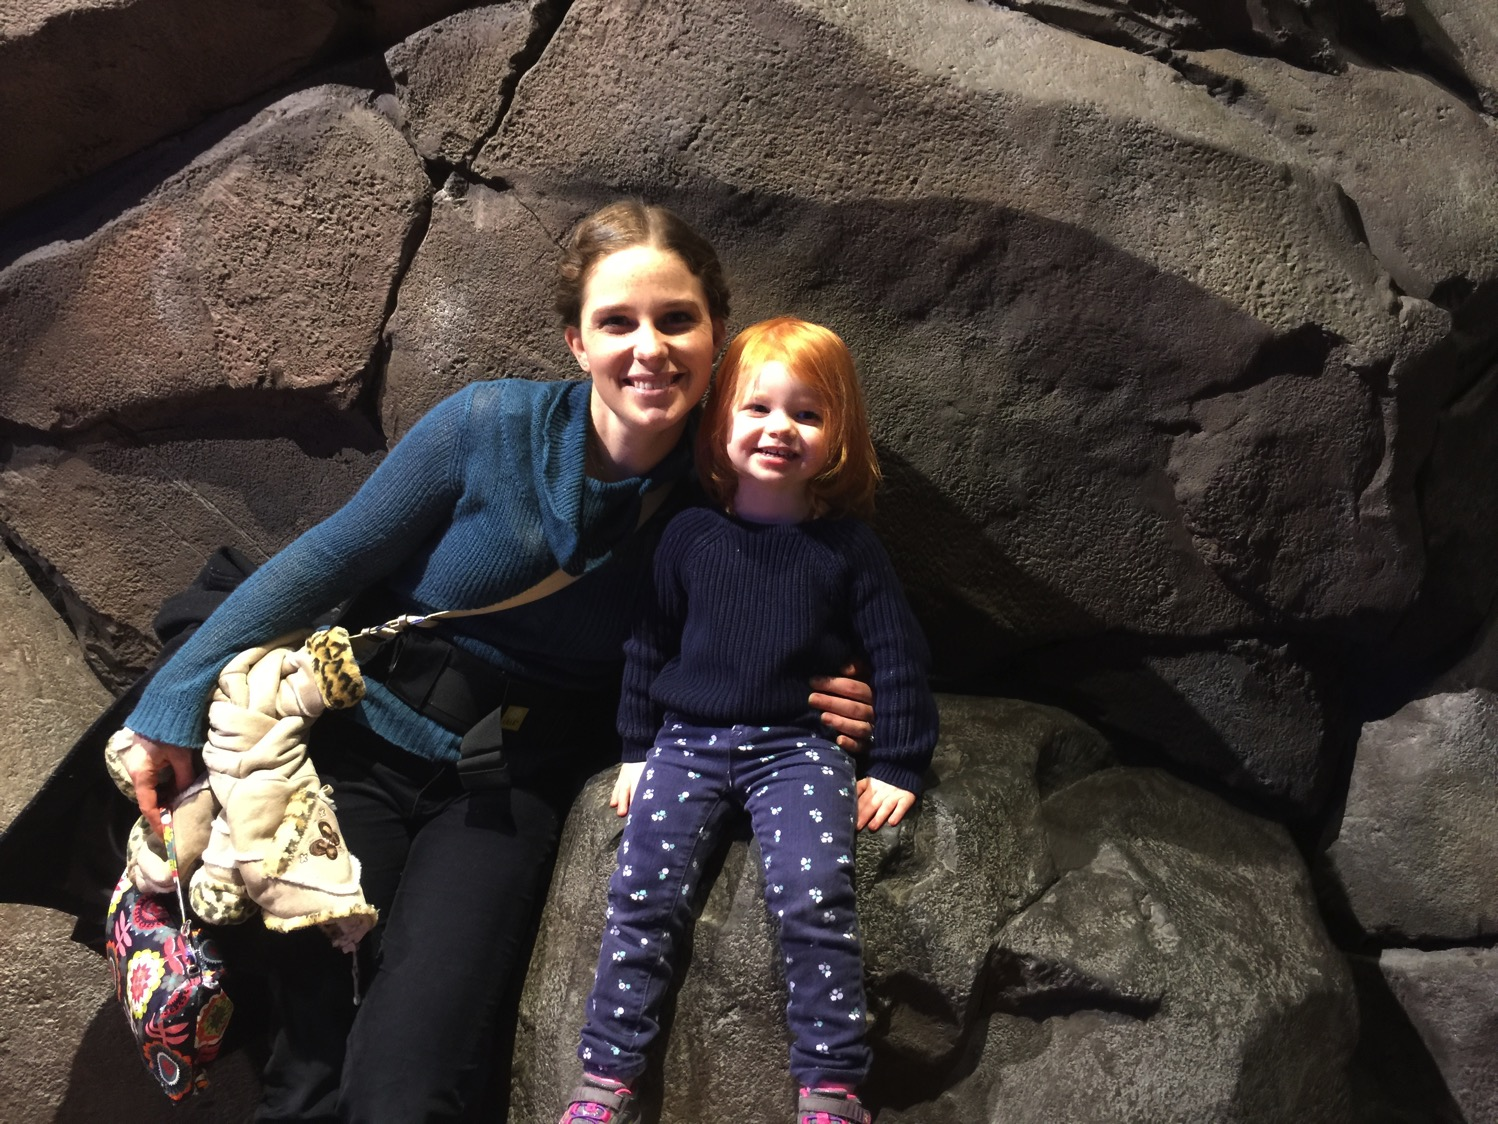 Mommy and Me Monday at the Aquarium